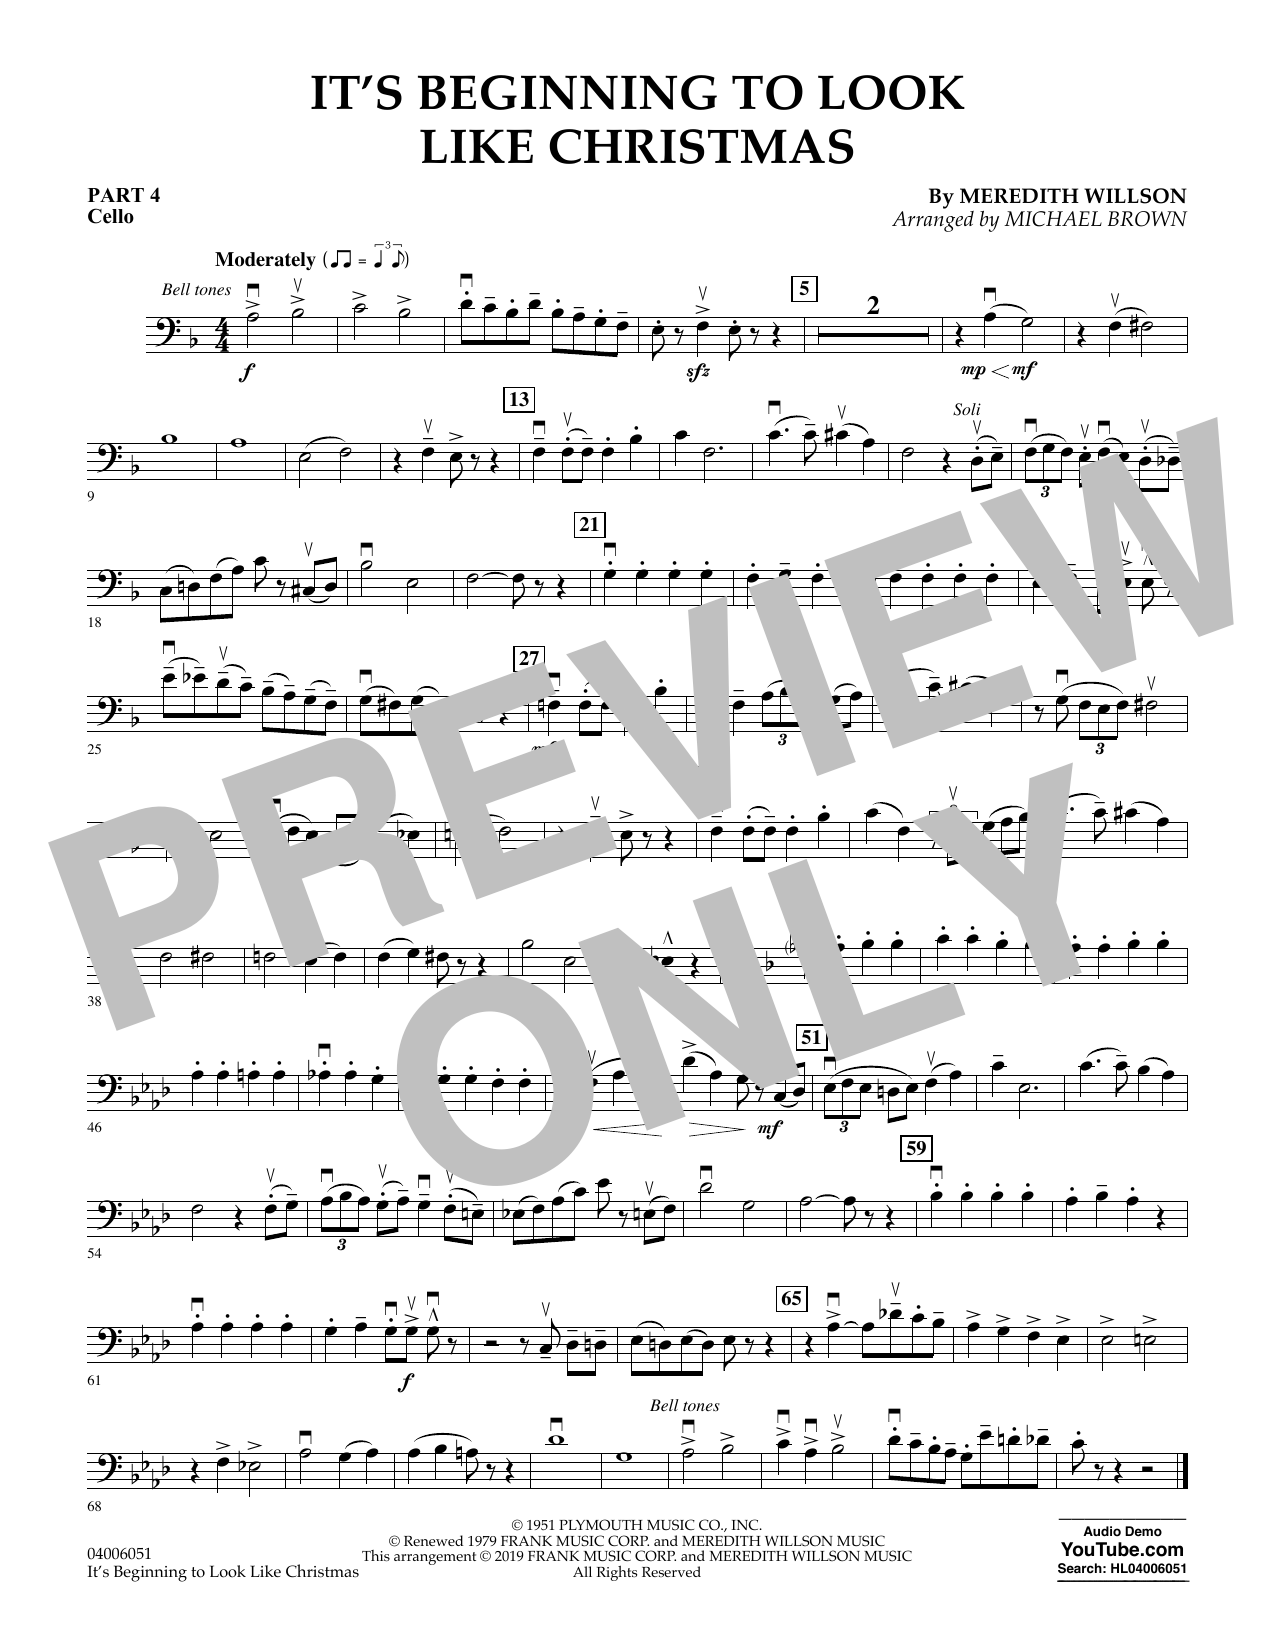 It's Beginning to Look Like Christmas (arr. Michael Brown) - Pt.4 - Cello (Flex-Band)